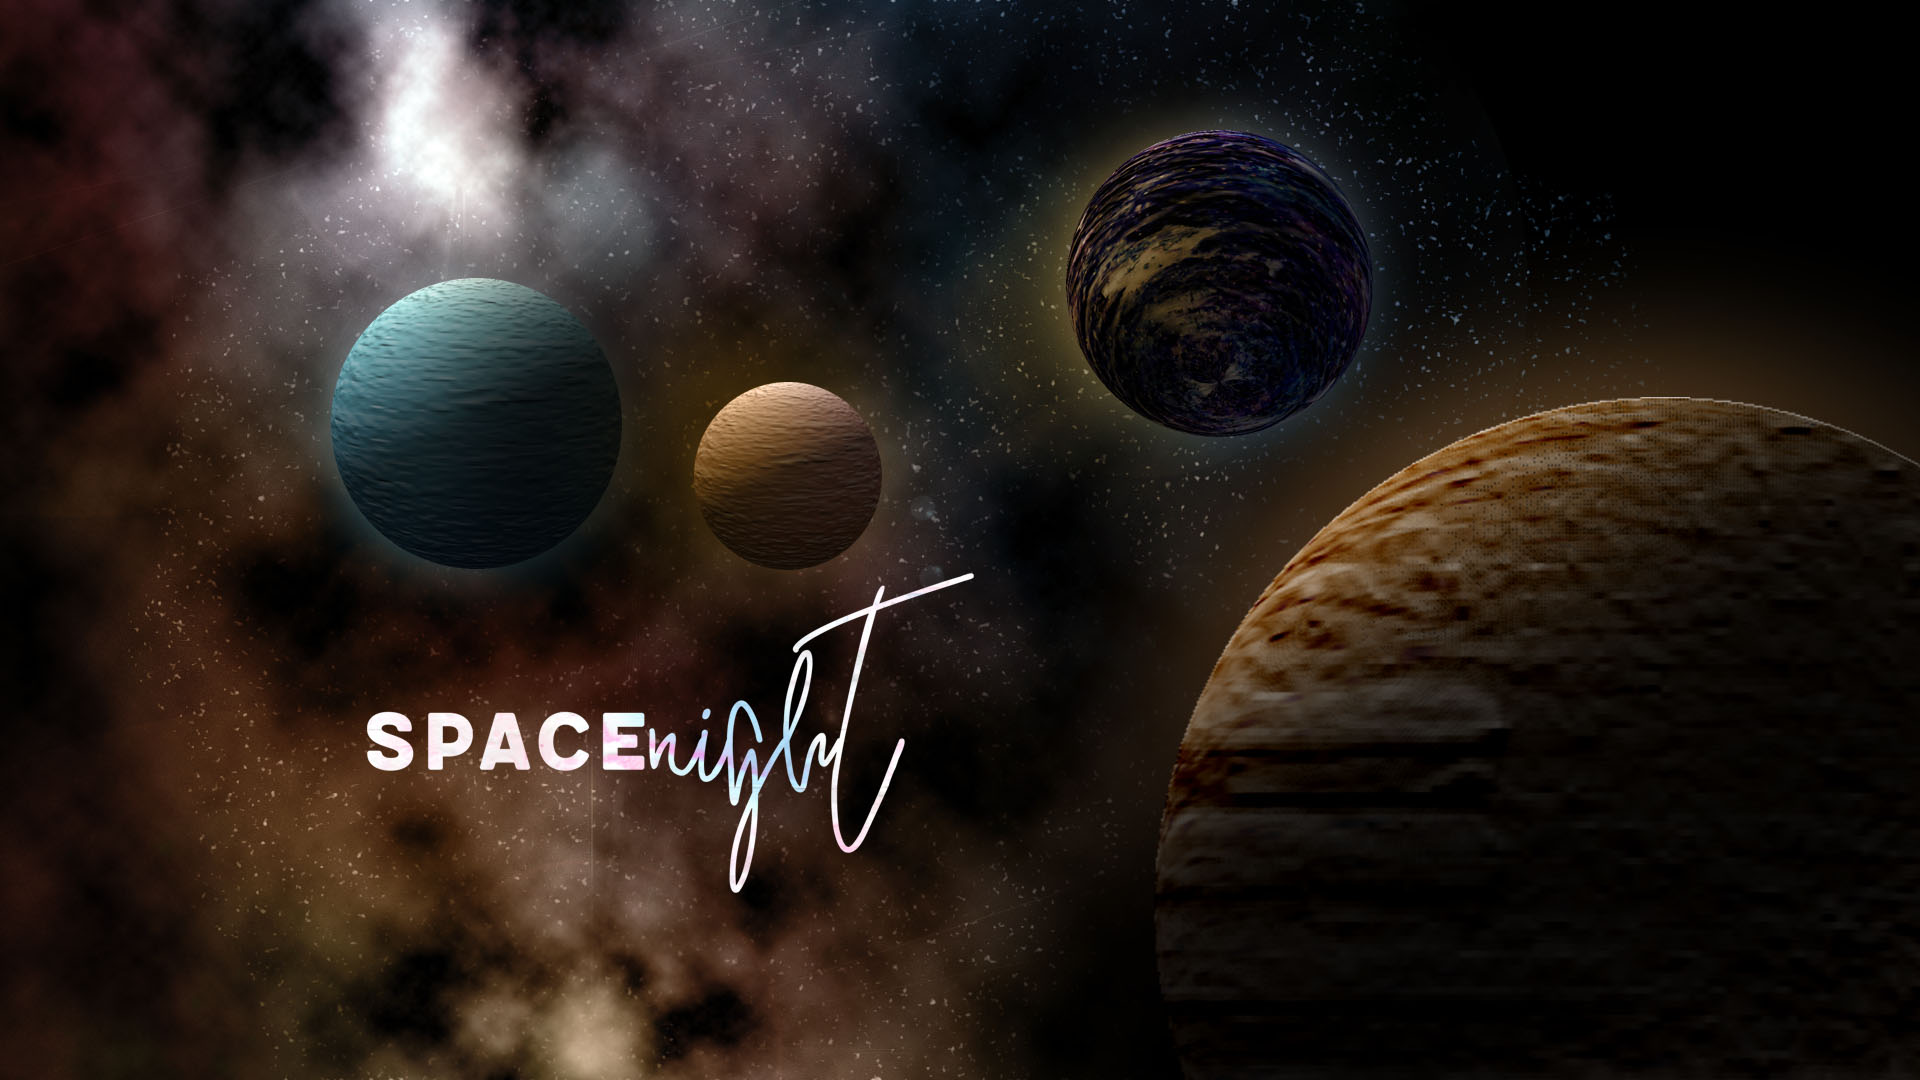 Create planets and a nice galaxy